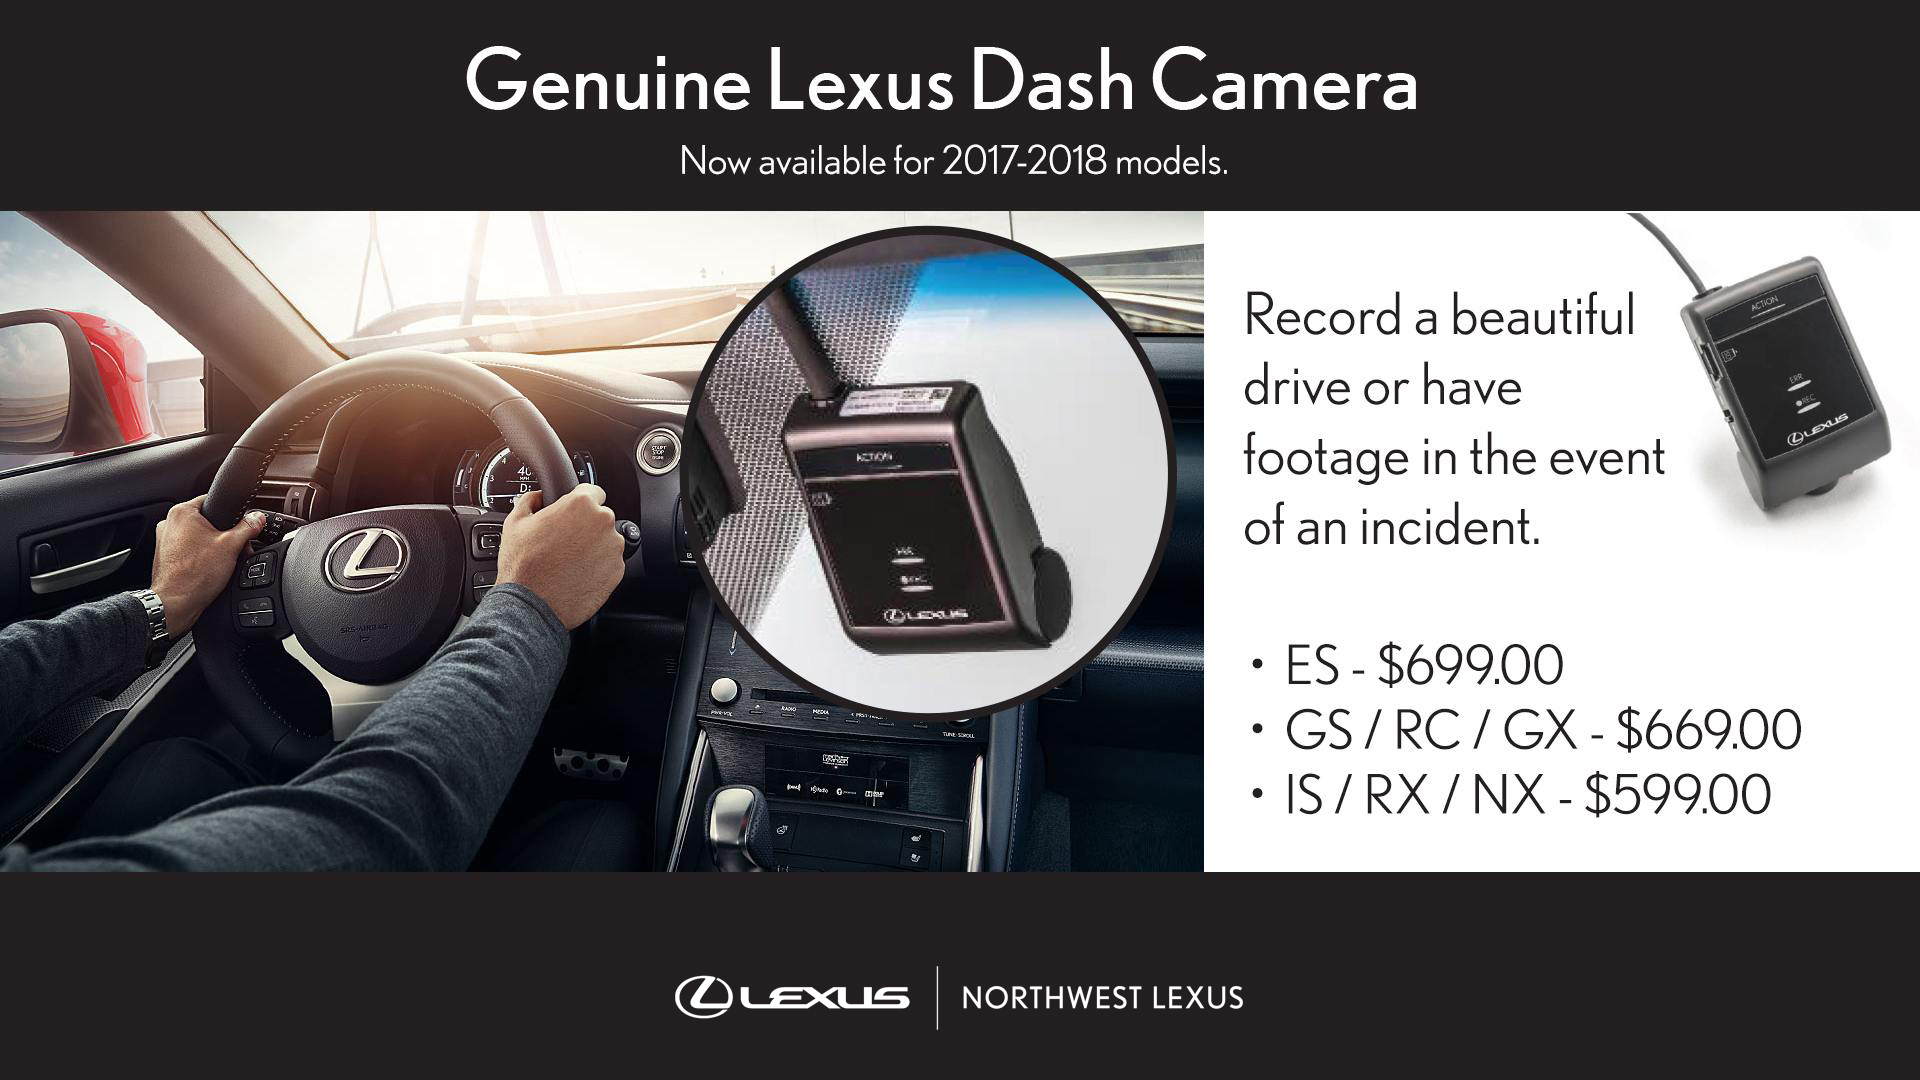 Genuine Lexus Dash Camera